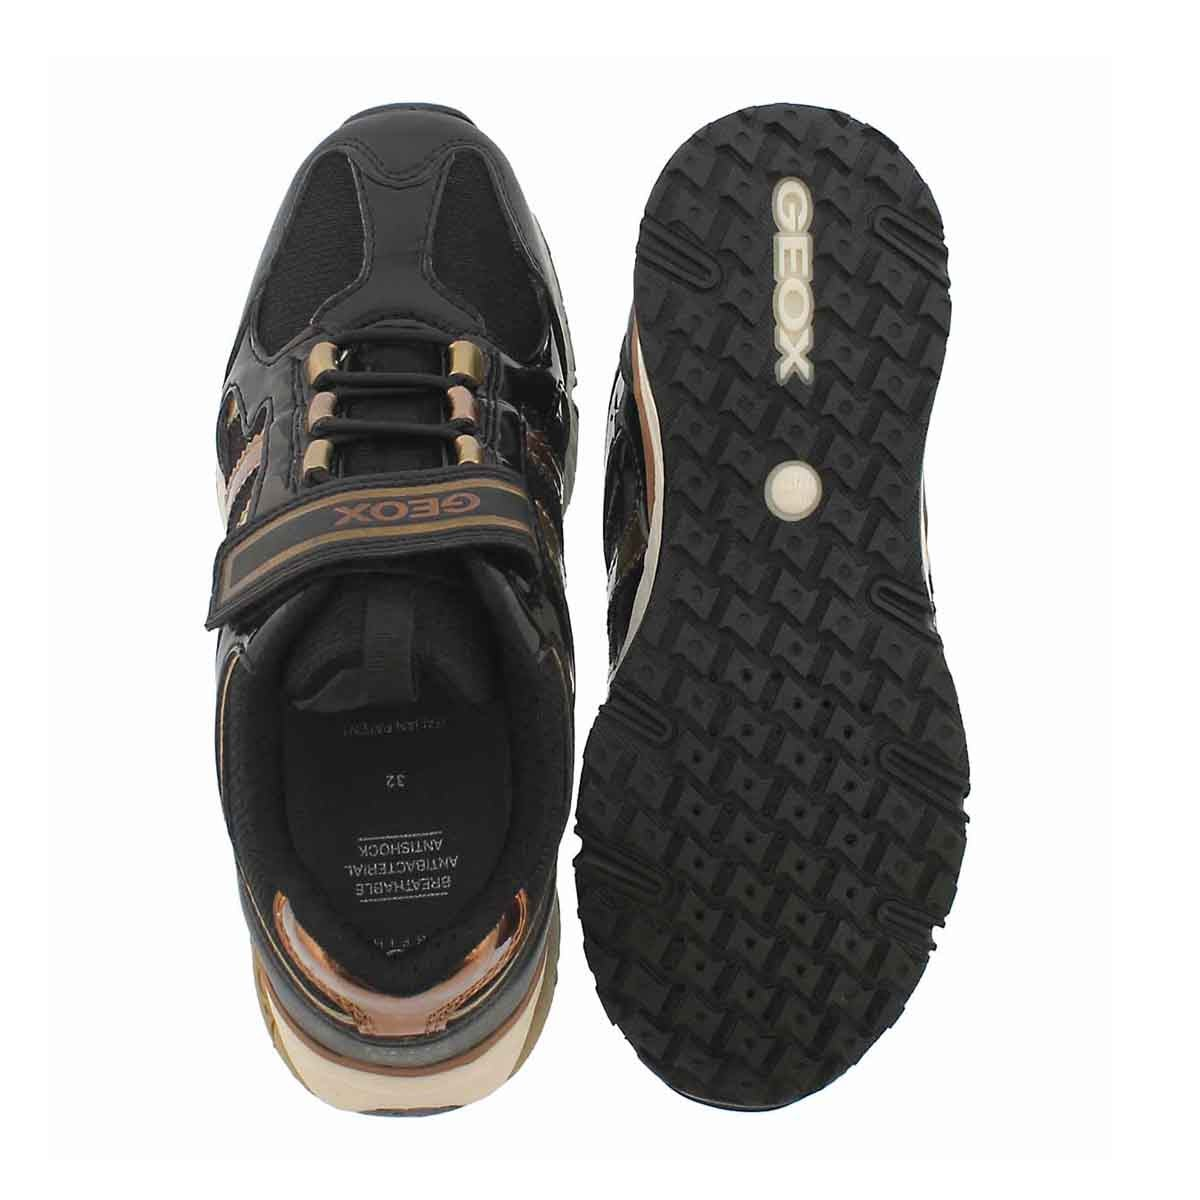 Grls Bernie black/bronze sneakers